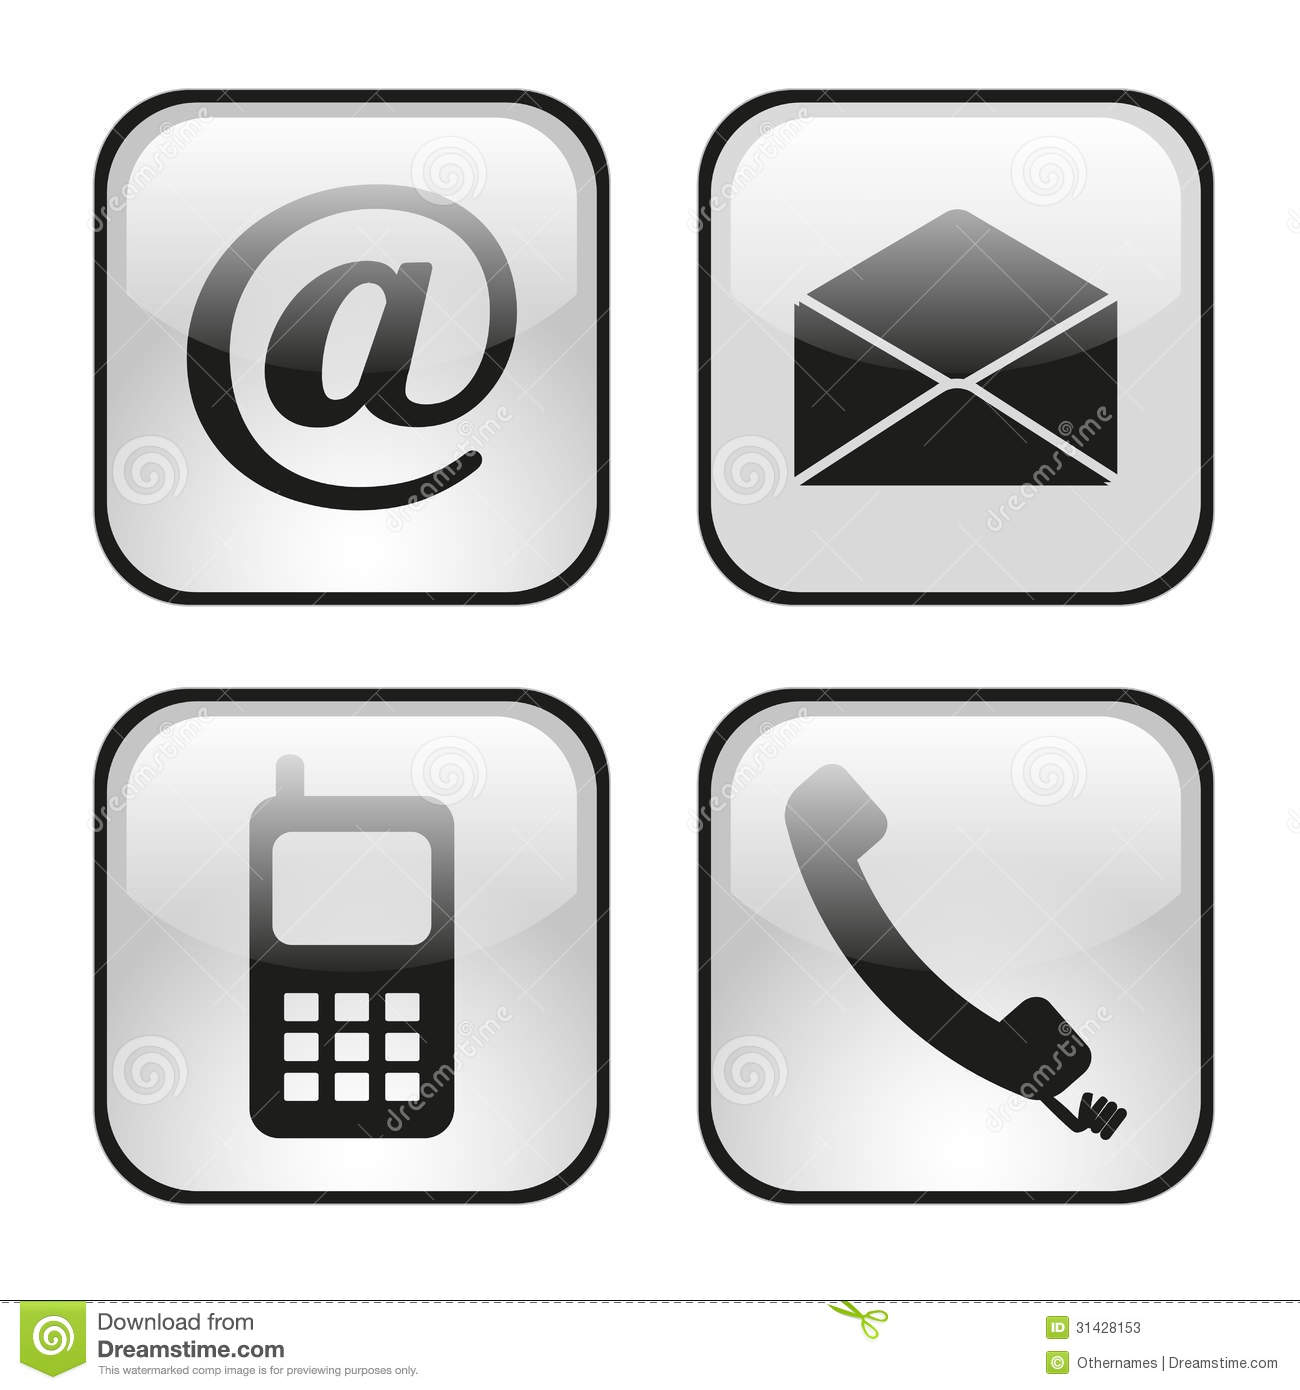 16 telephone icon for email images contact icons vector free blue email icon and phone icon. Black Bedroom Furniture Sets. Home Design Ideas